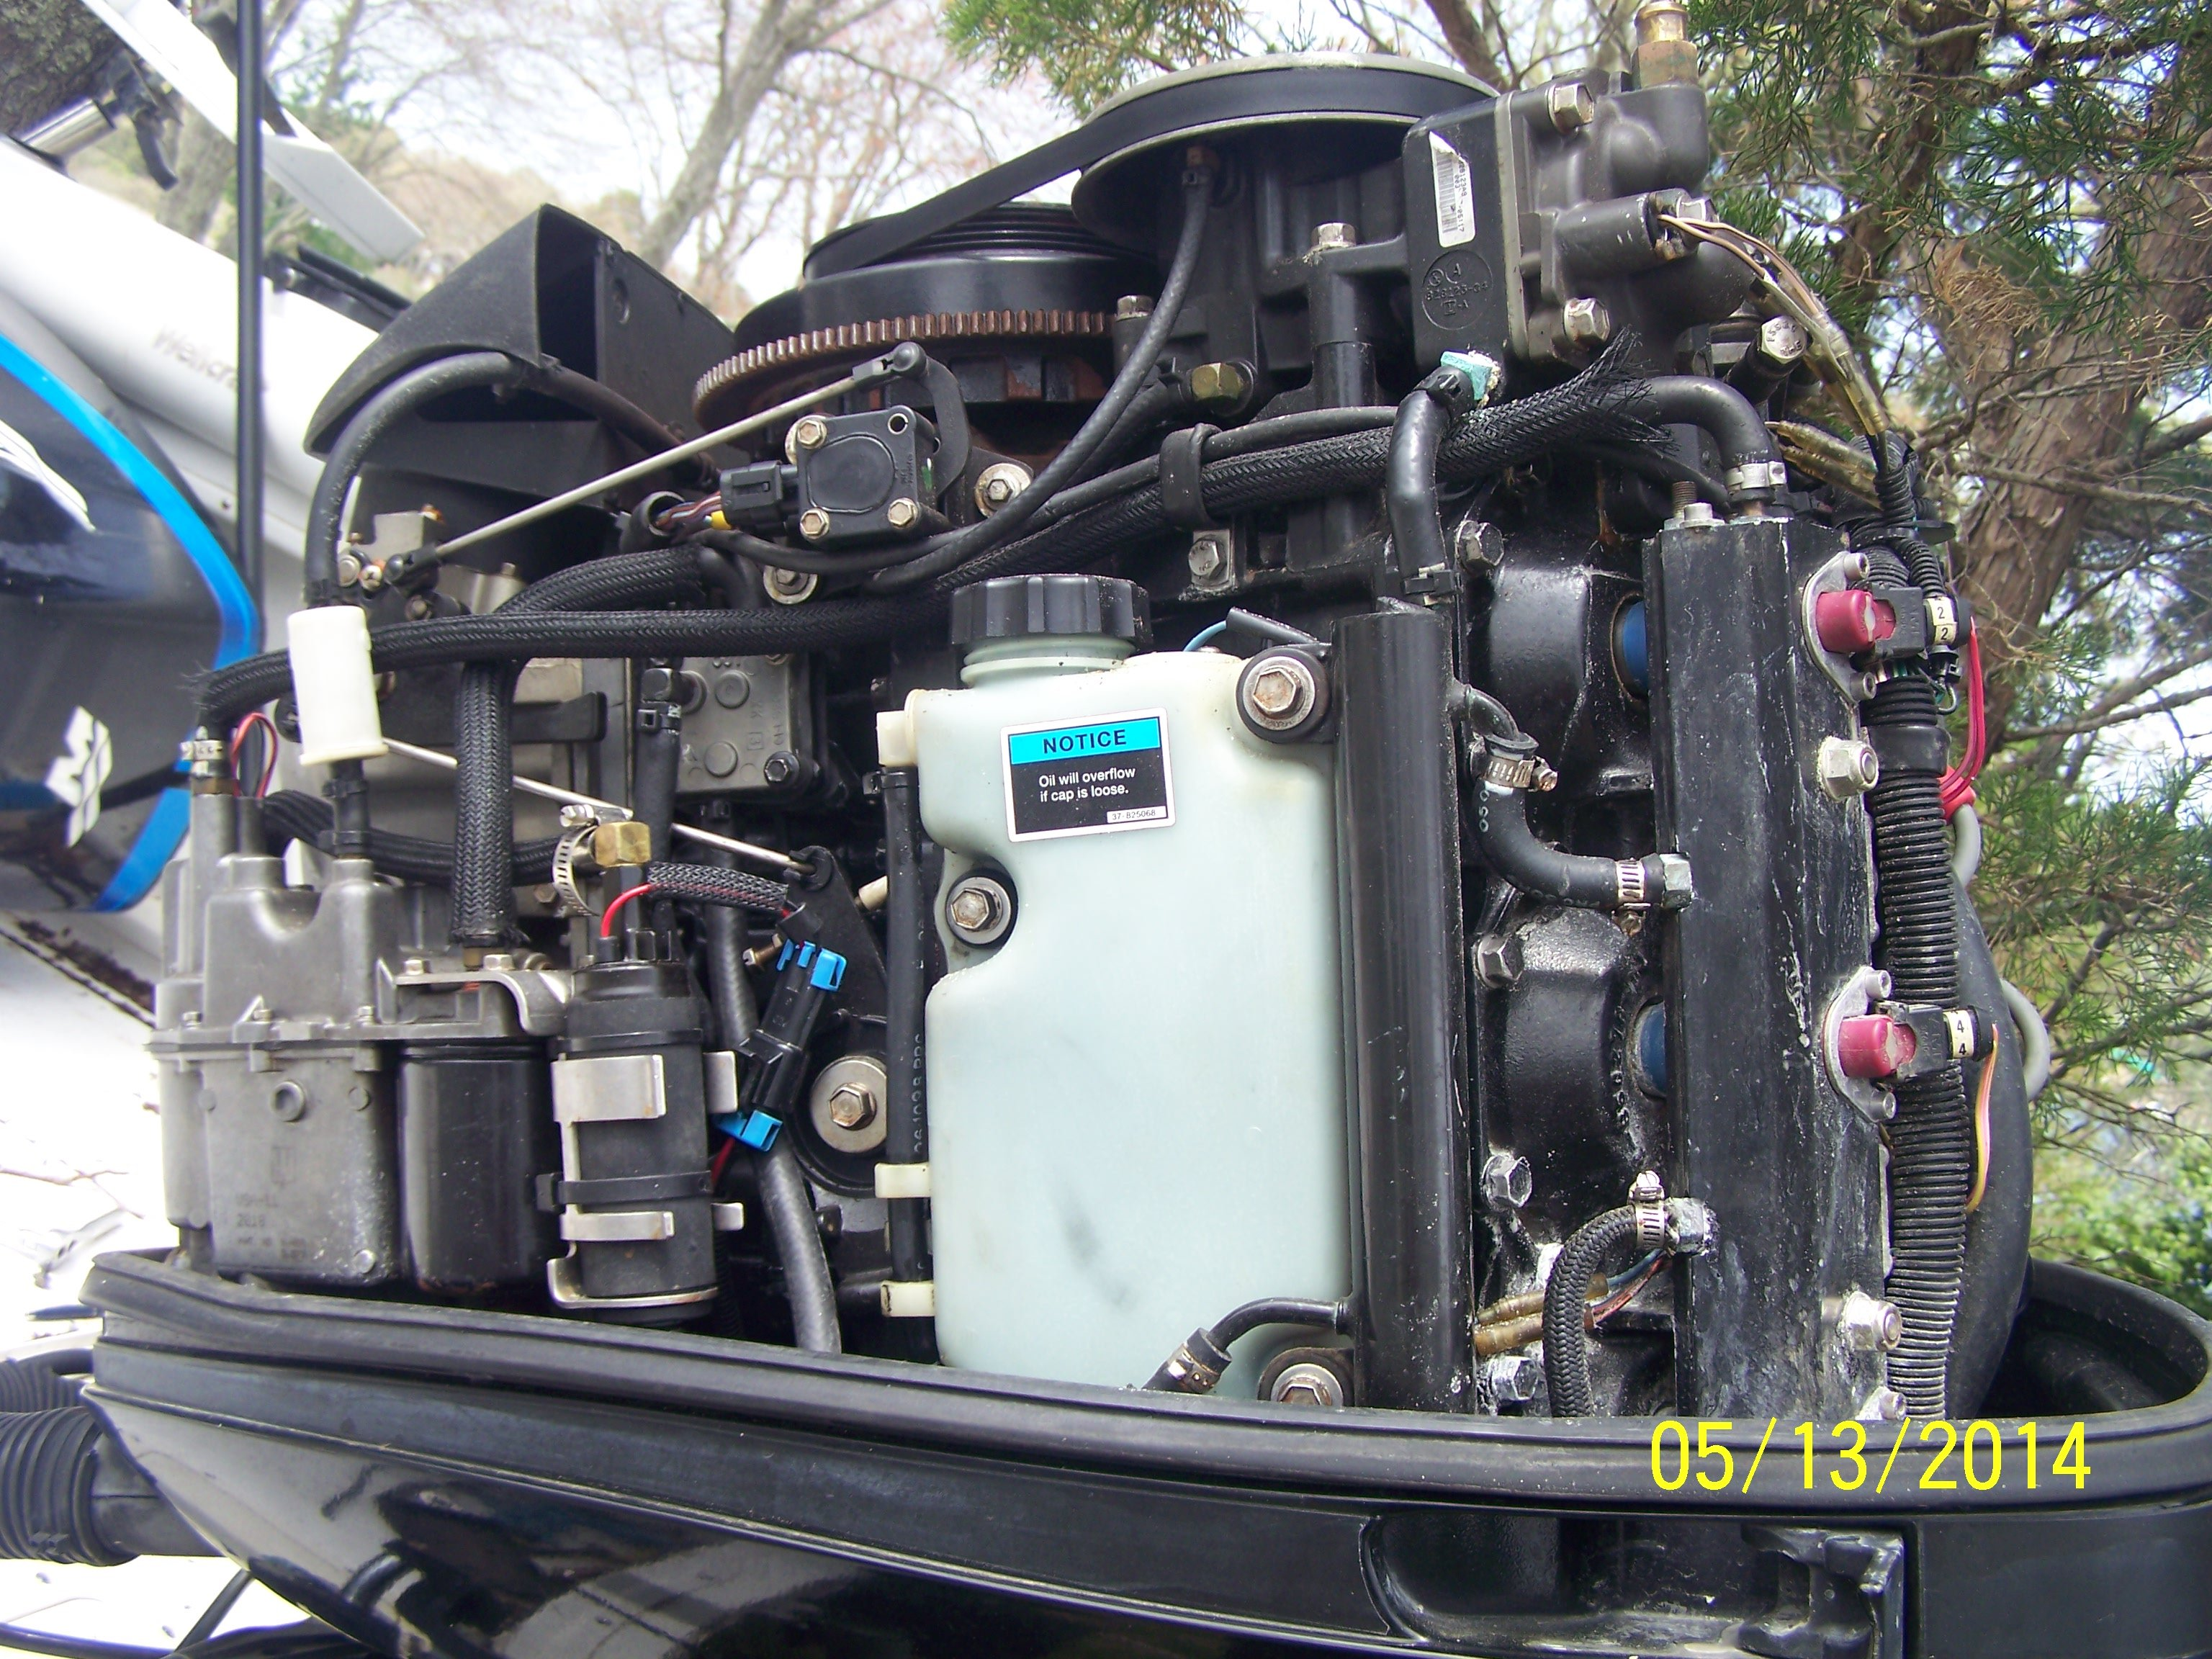 Img besides Yamaha Primary Id Numbers Usa Only Models Engineframe Numbers Bigyau Dd also Img together with Maxresdefault in addition F A A B De Cb D D. on mercury outboard serial number location